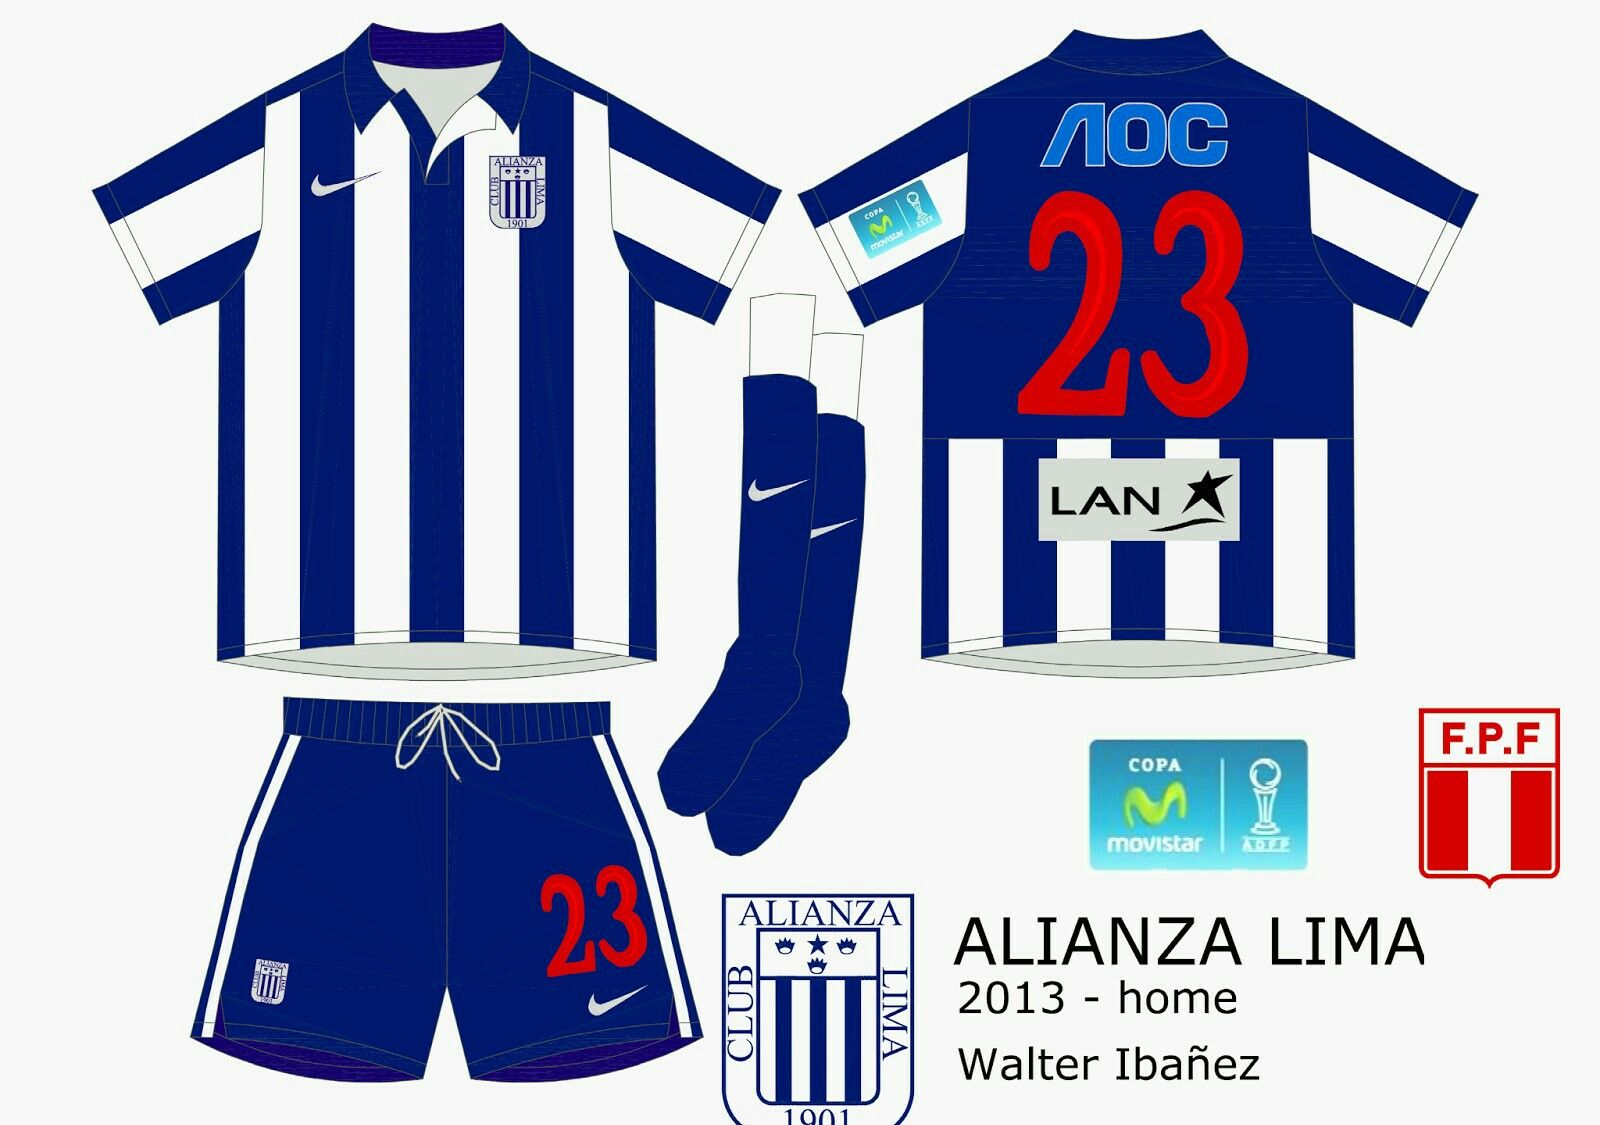 Alianza Lima home kit for 201314. Sports jersey, Lima